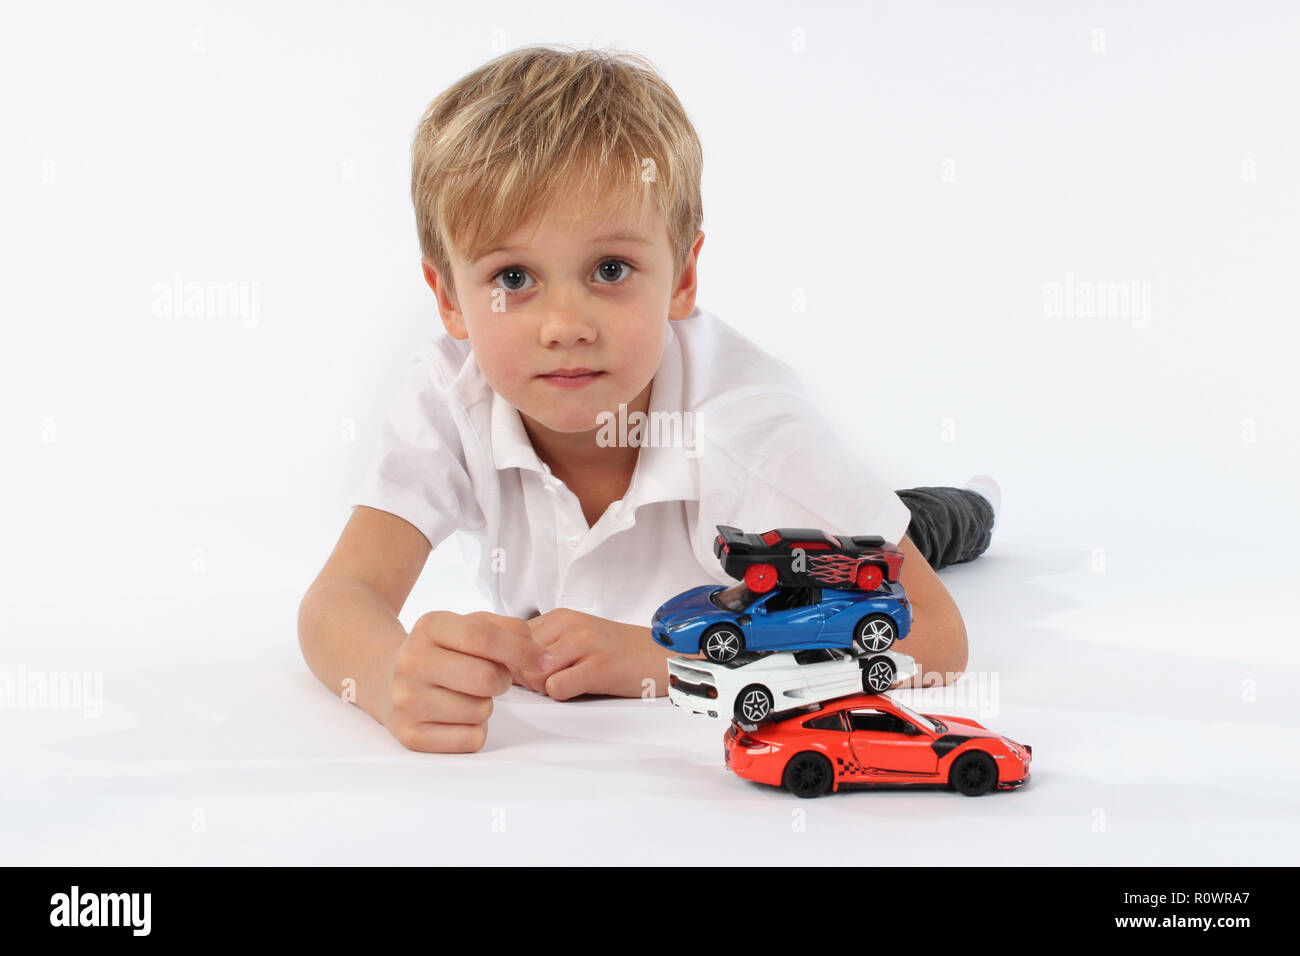 Child boy playing with toy cars in a studio - Stock Image